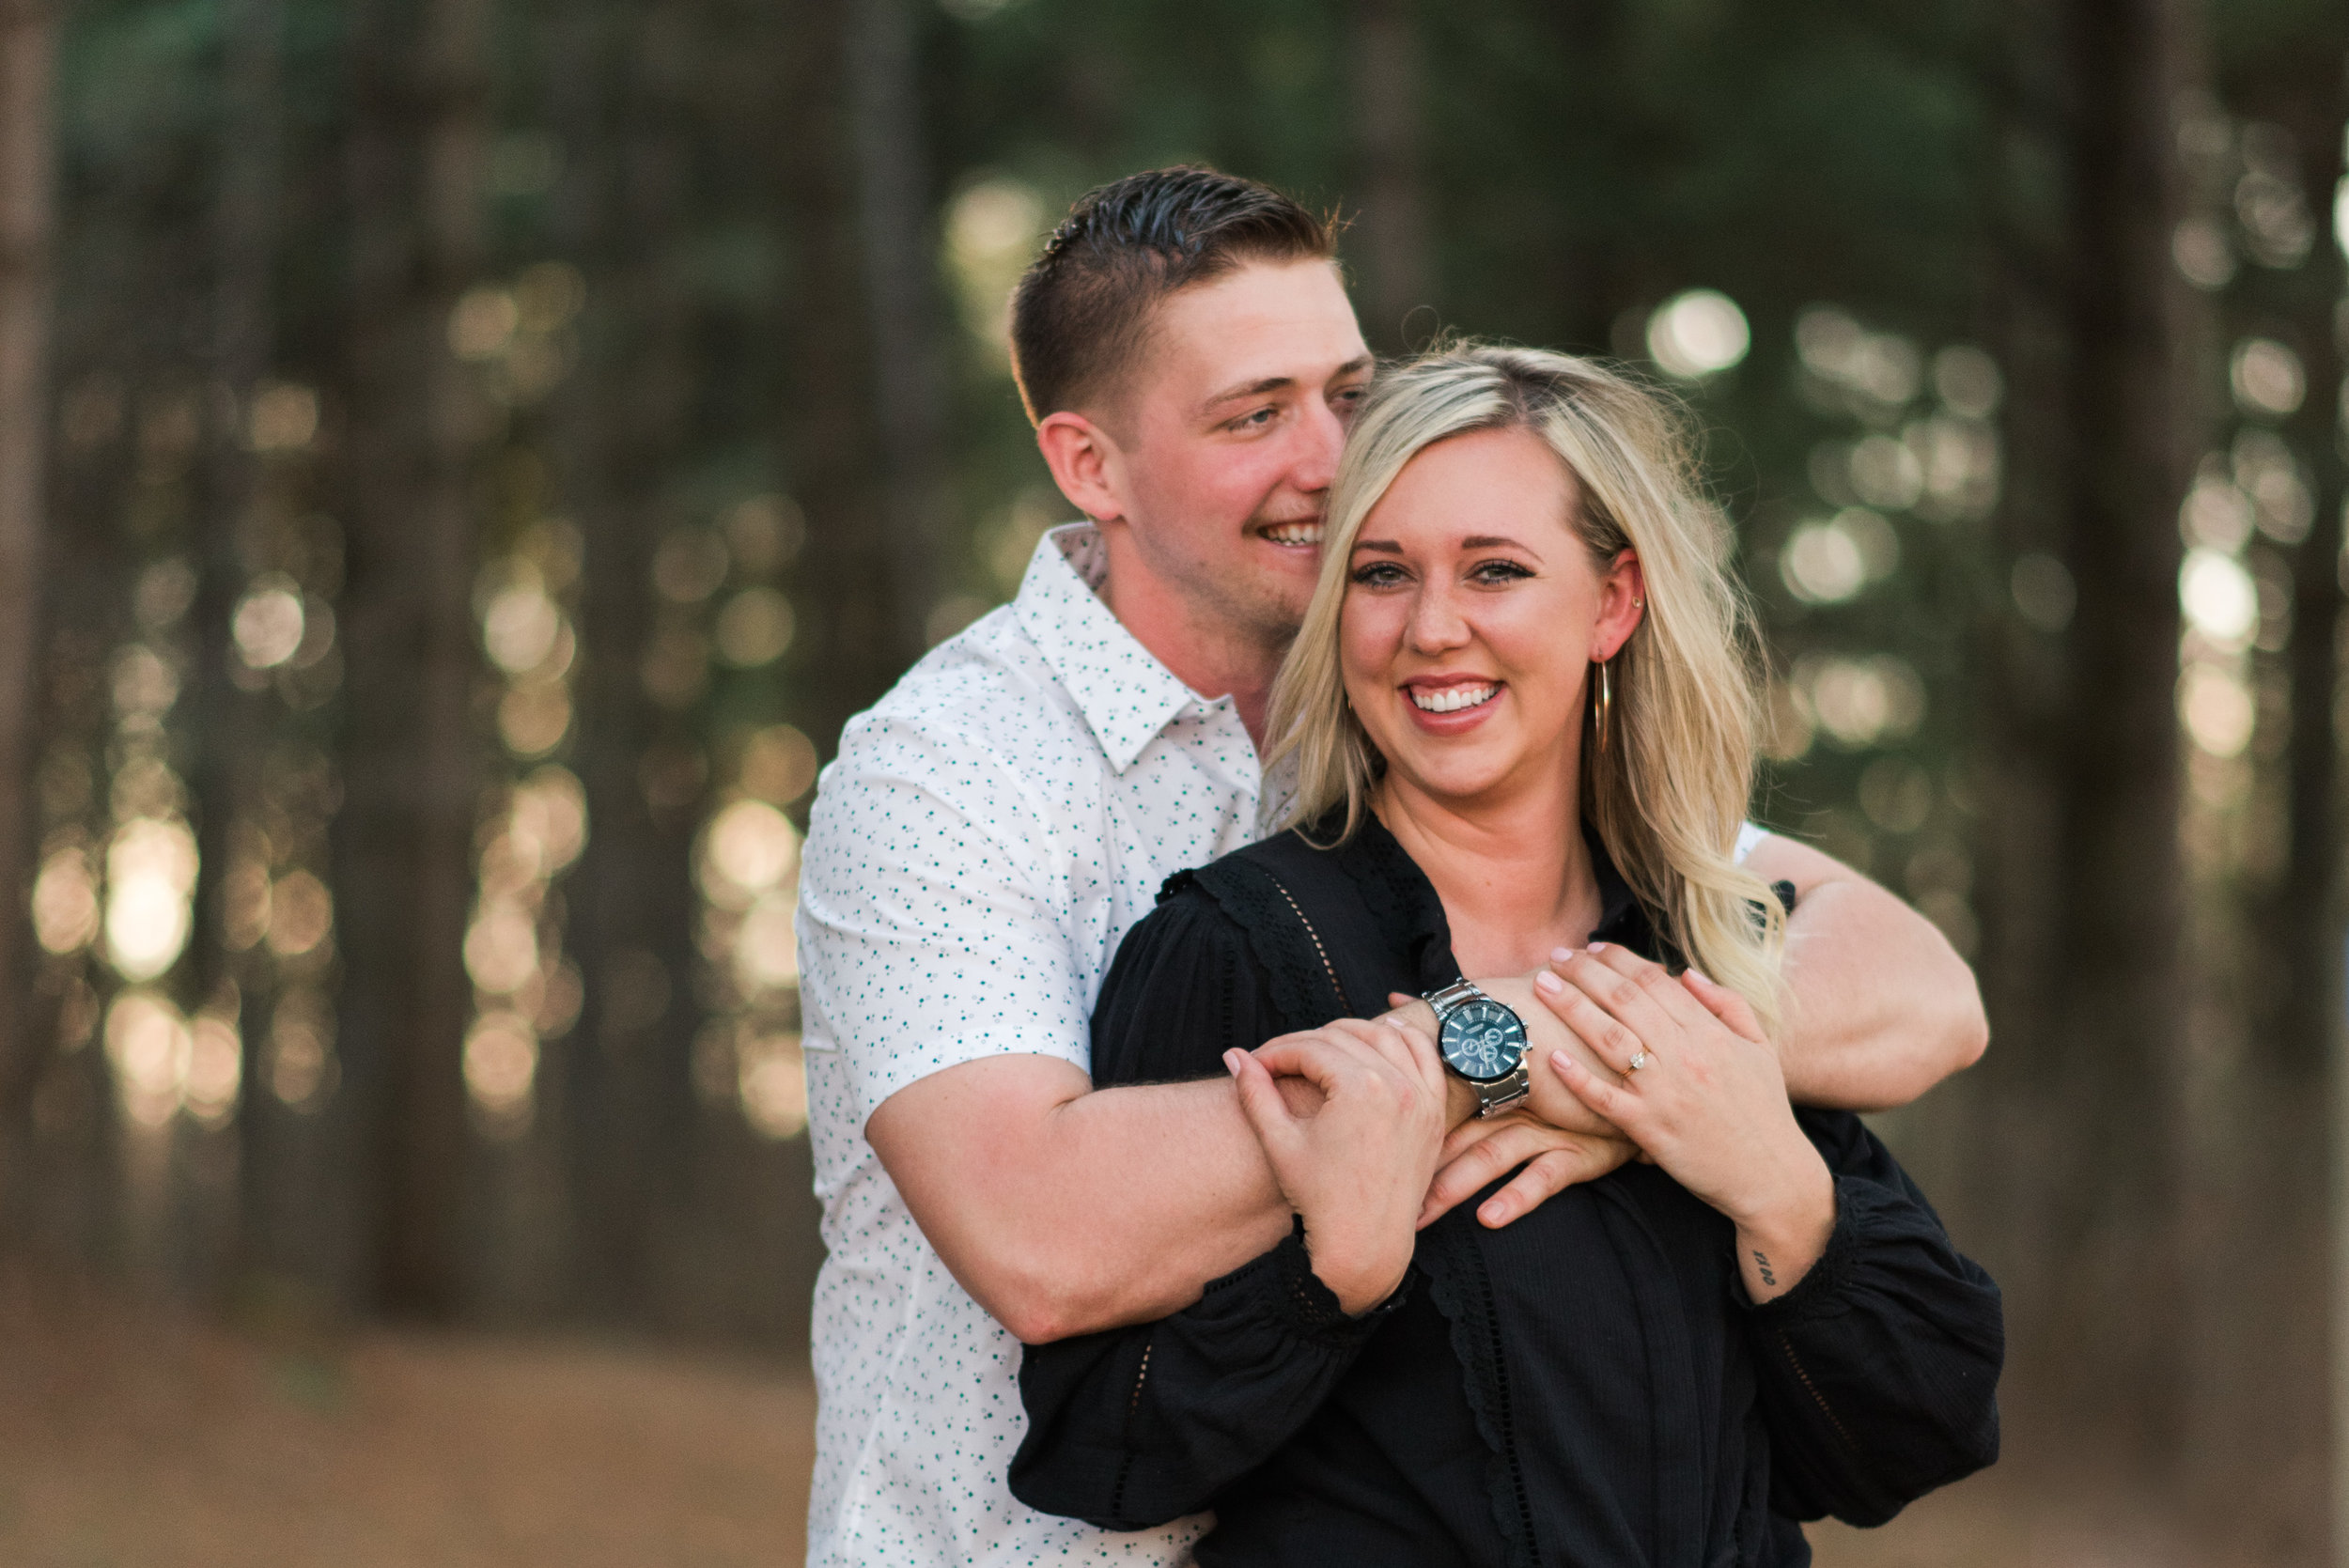 Lebanon-Hills-engagement-photos